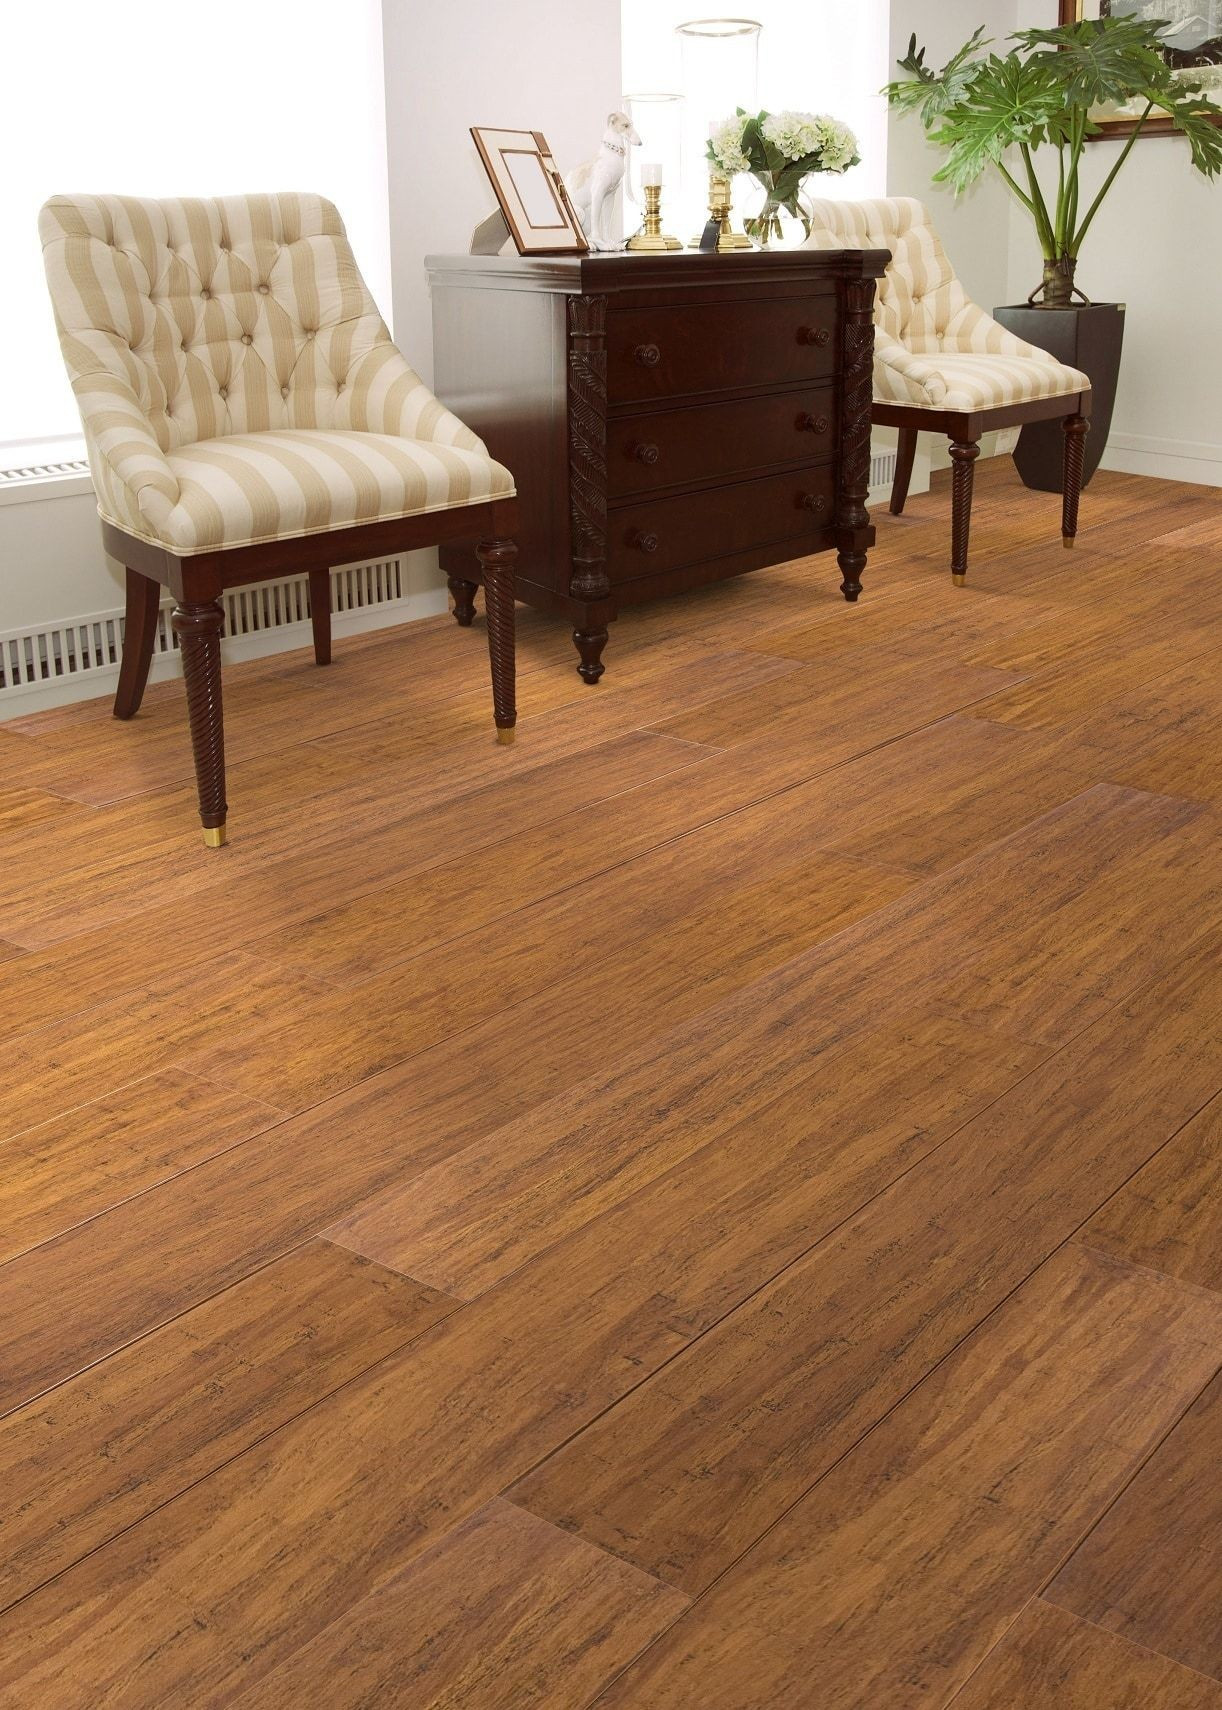 lw hardwood flooring of 18 new bamboo floors pics dizpos com inside bamboo floors new engineered strand woven bamboo hand scraped carbonized 5 photos of 18 new bamboo